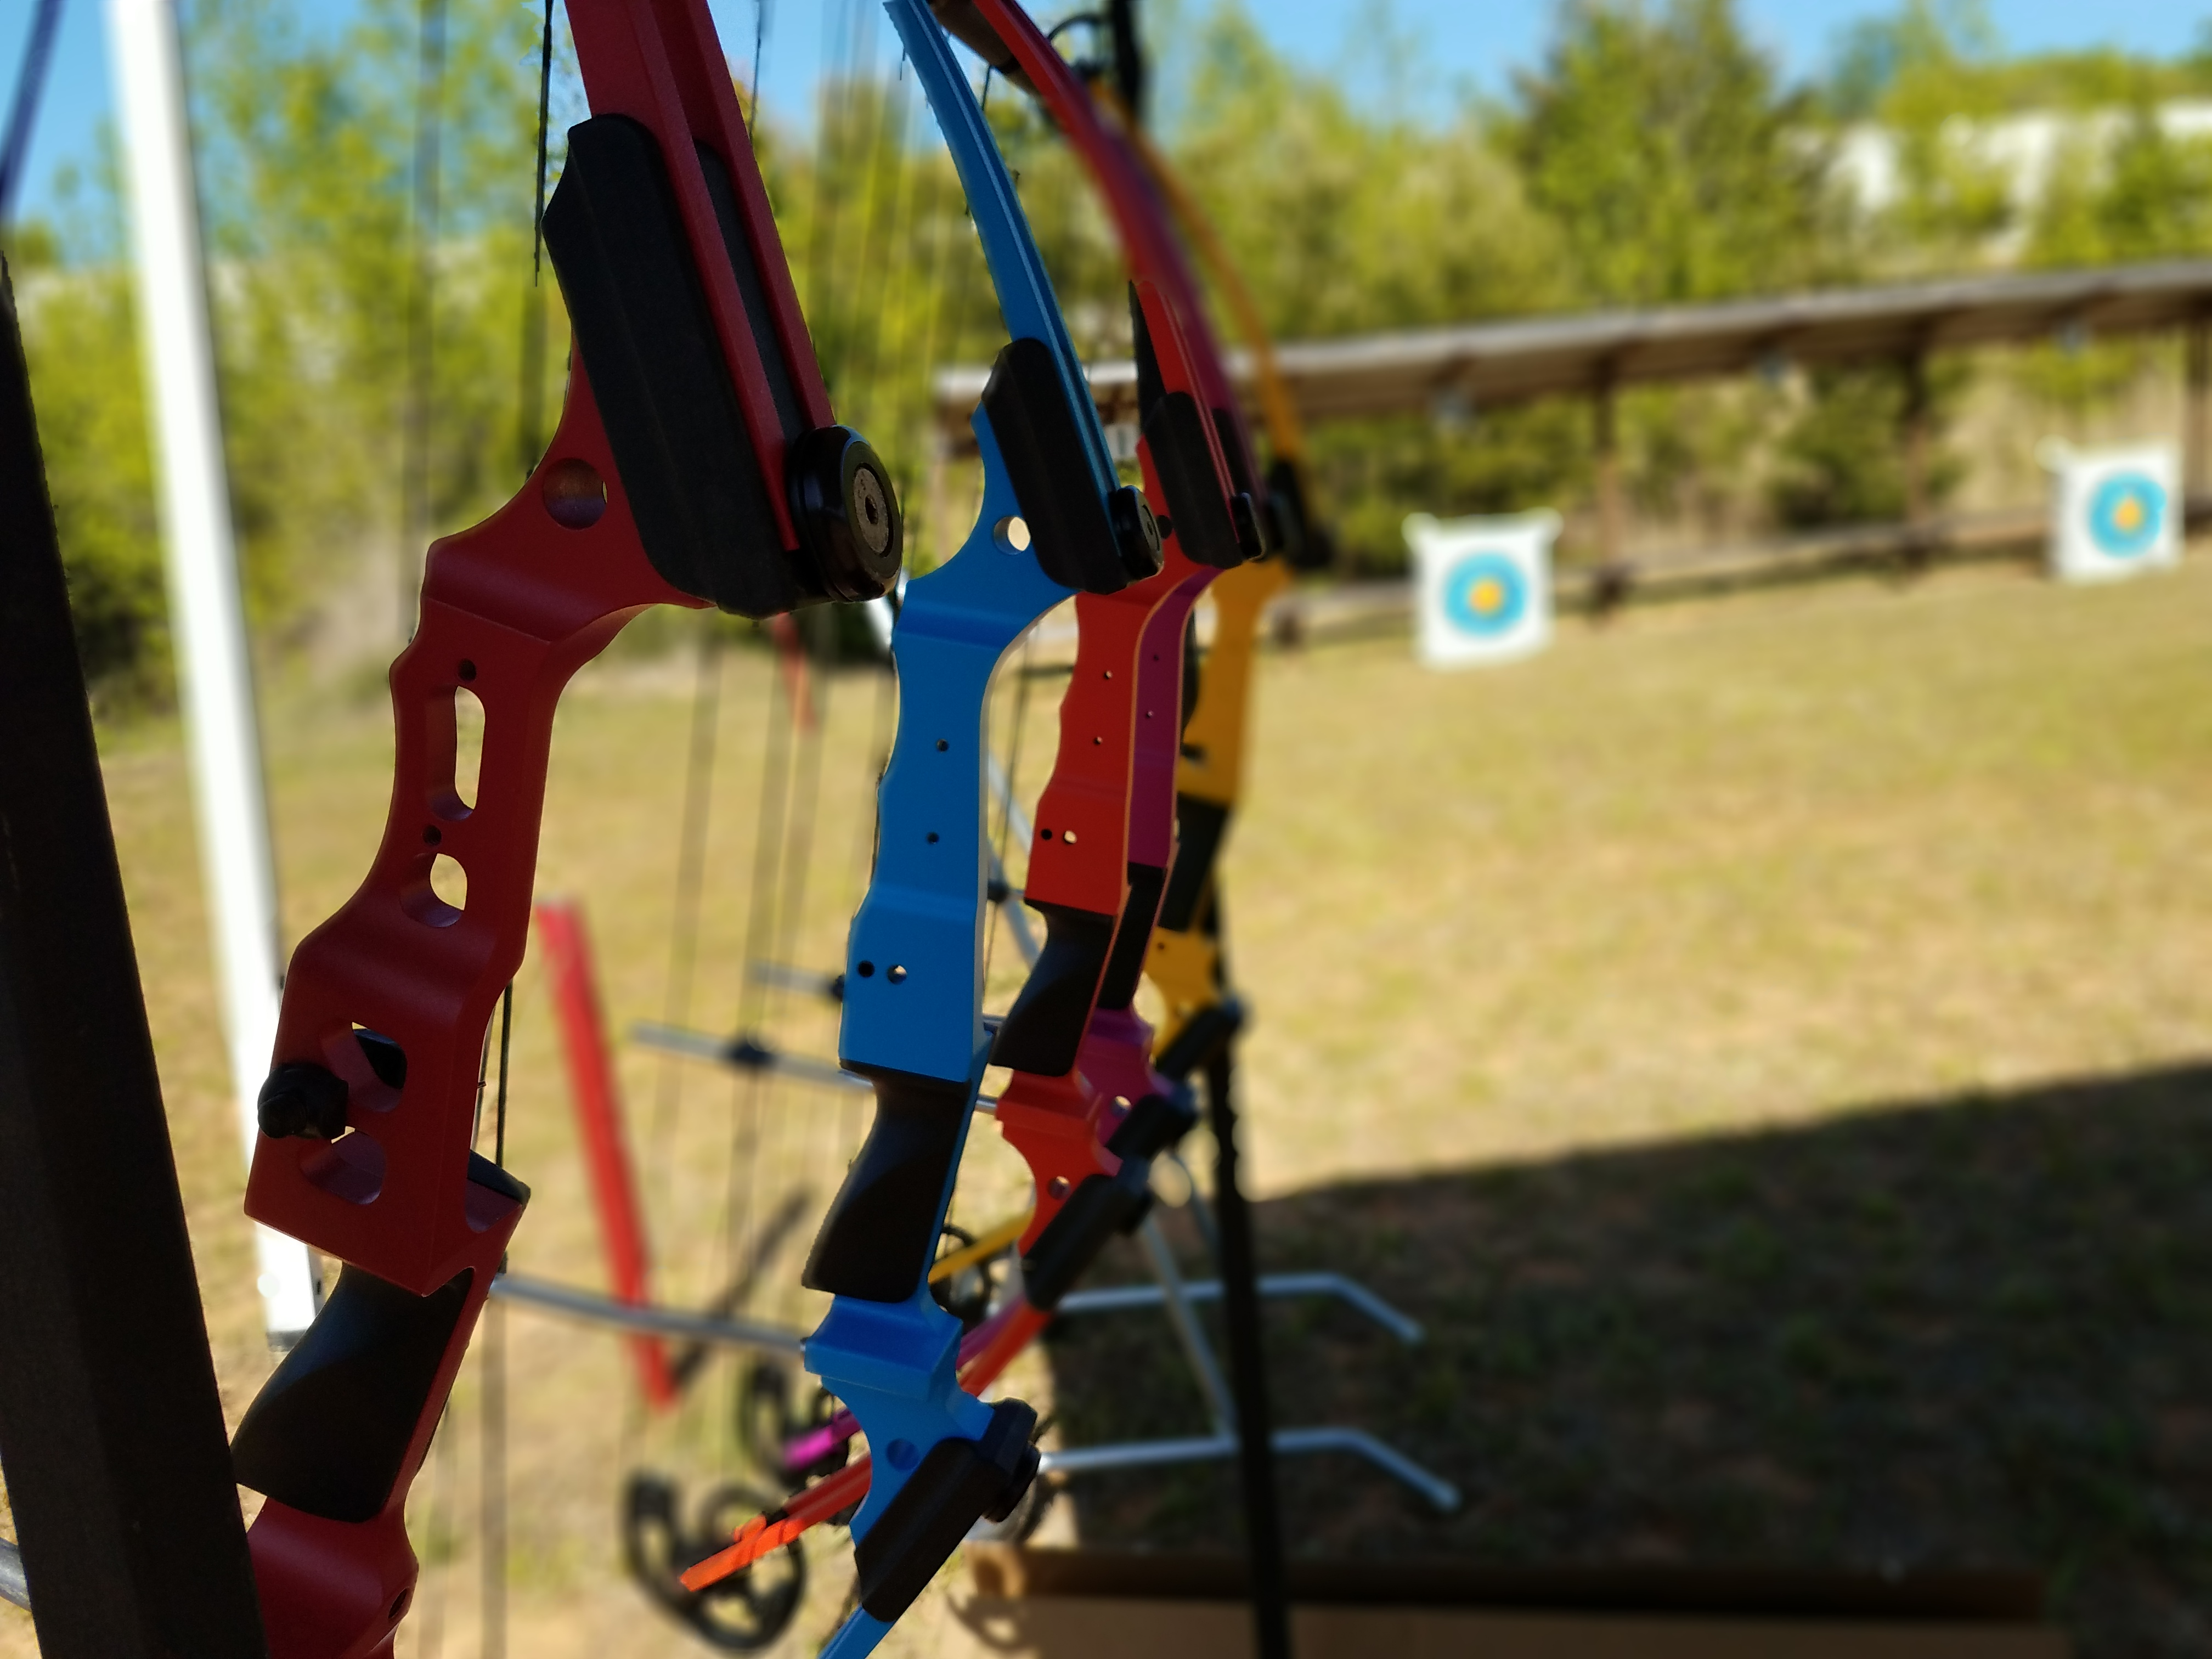 Hester Park Archery Range Now Open